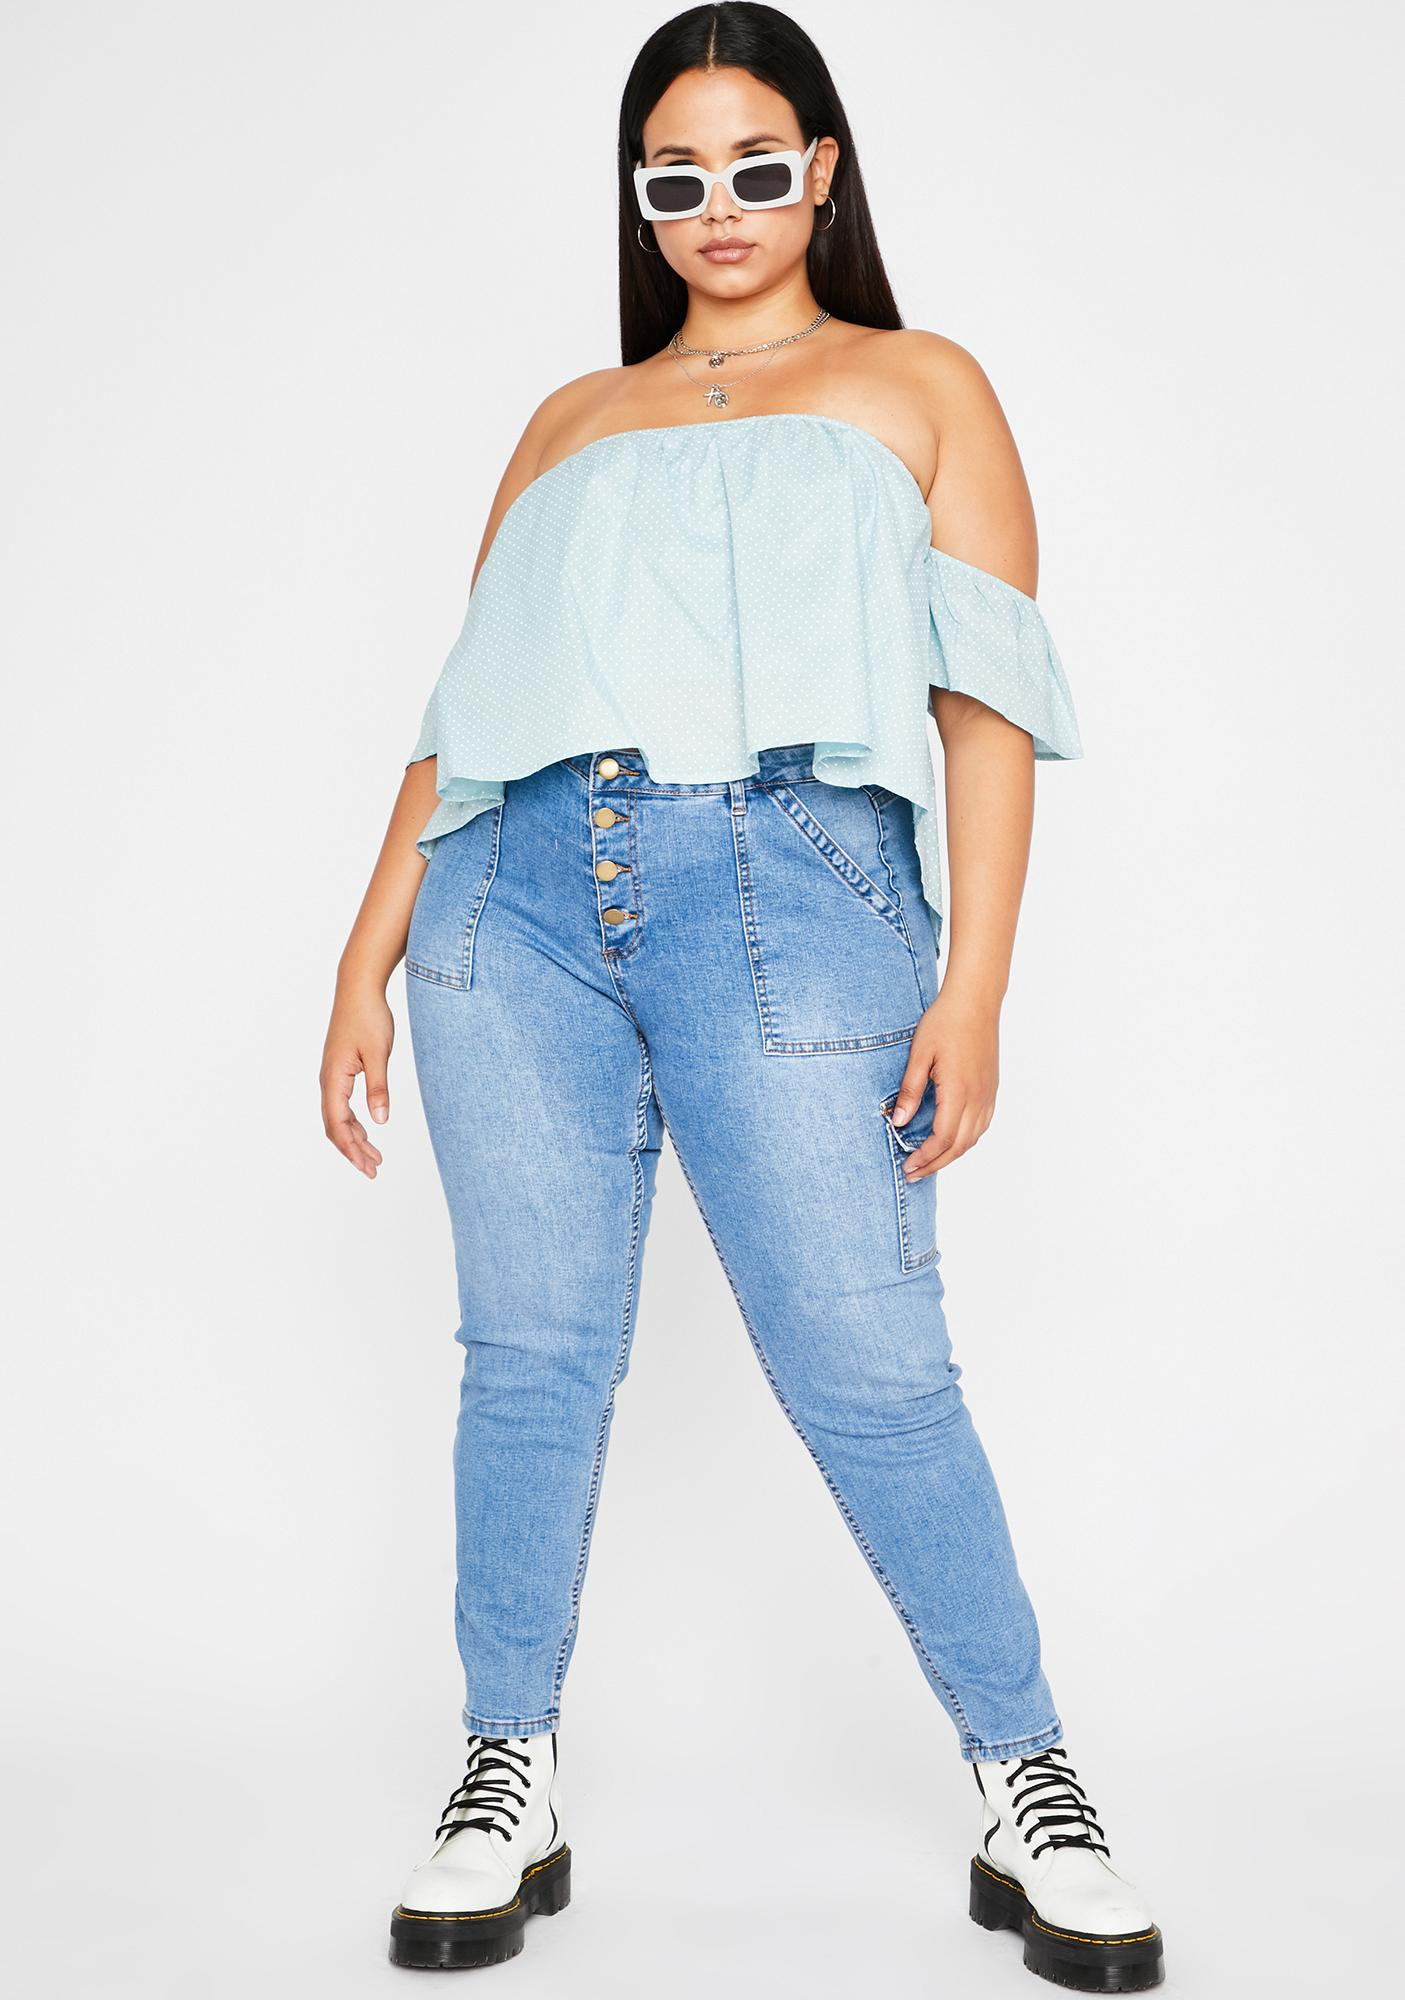 Sky Total People Person Crop Blouse